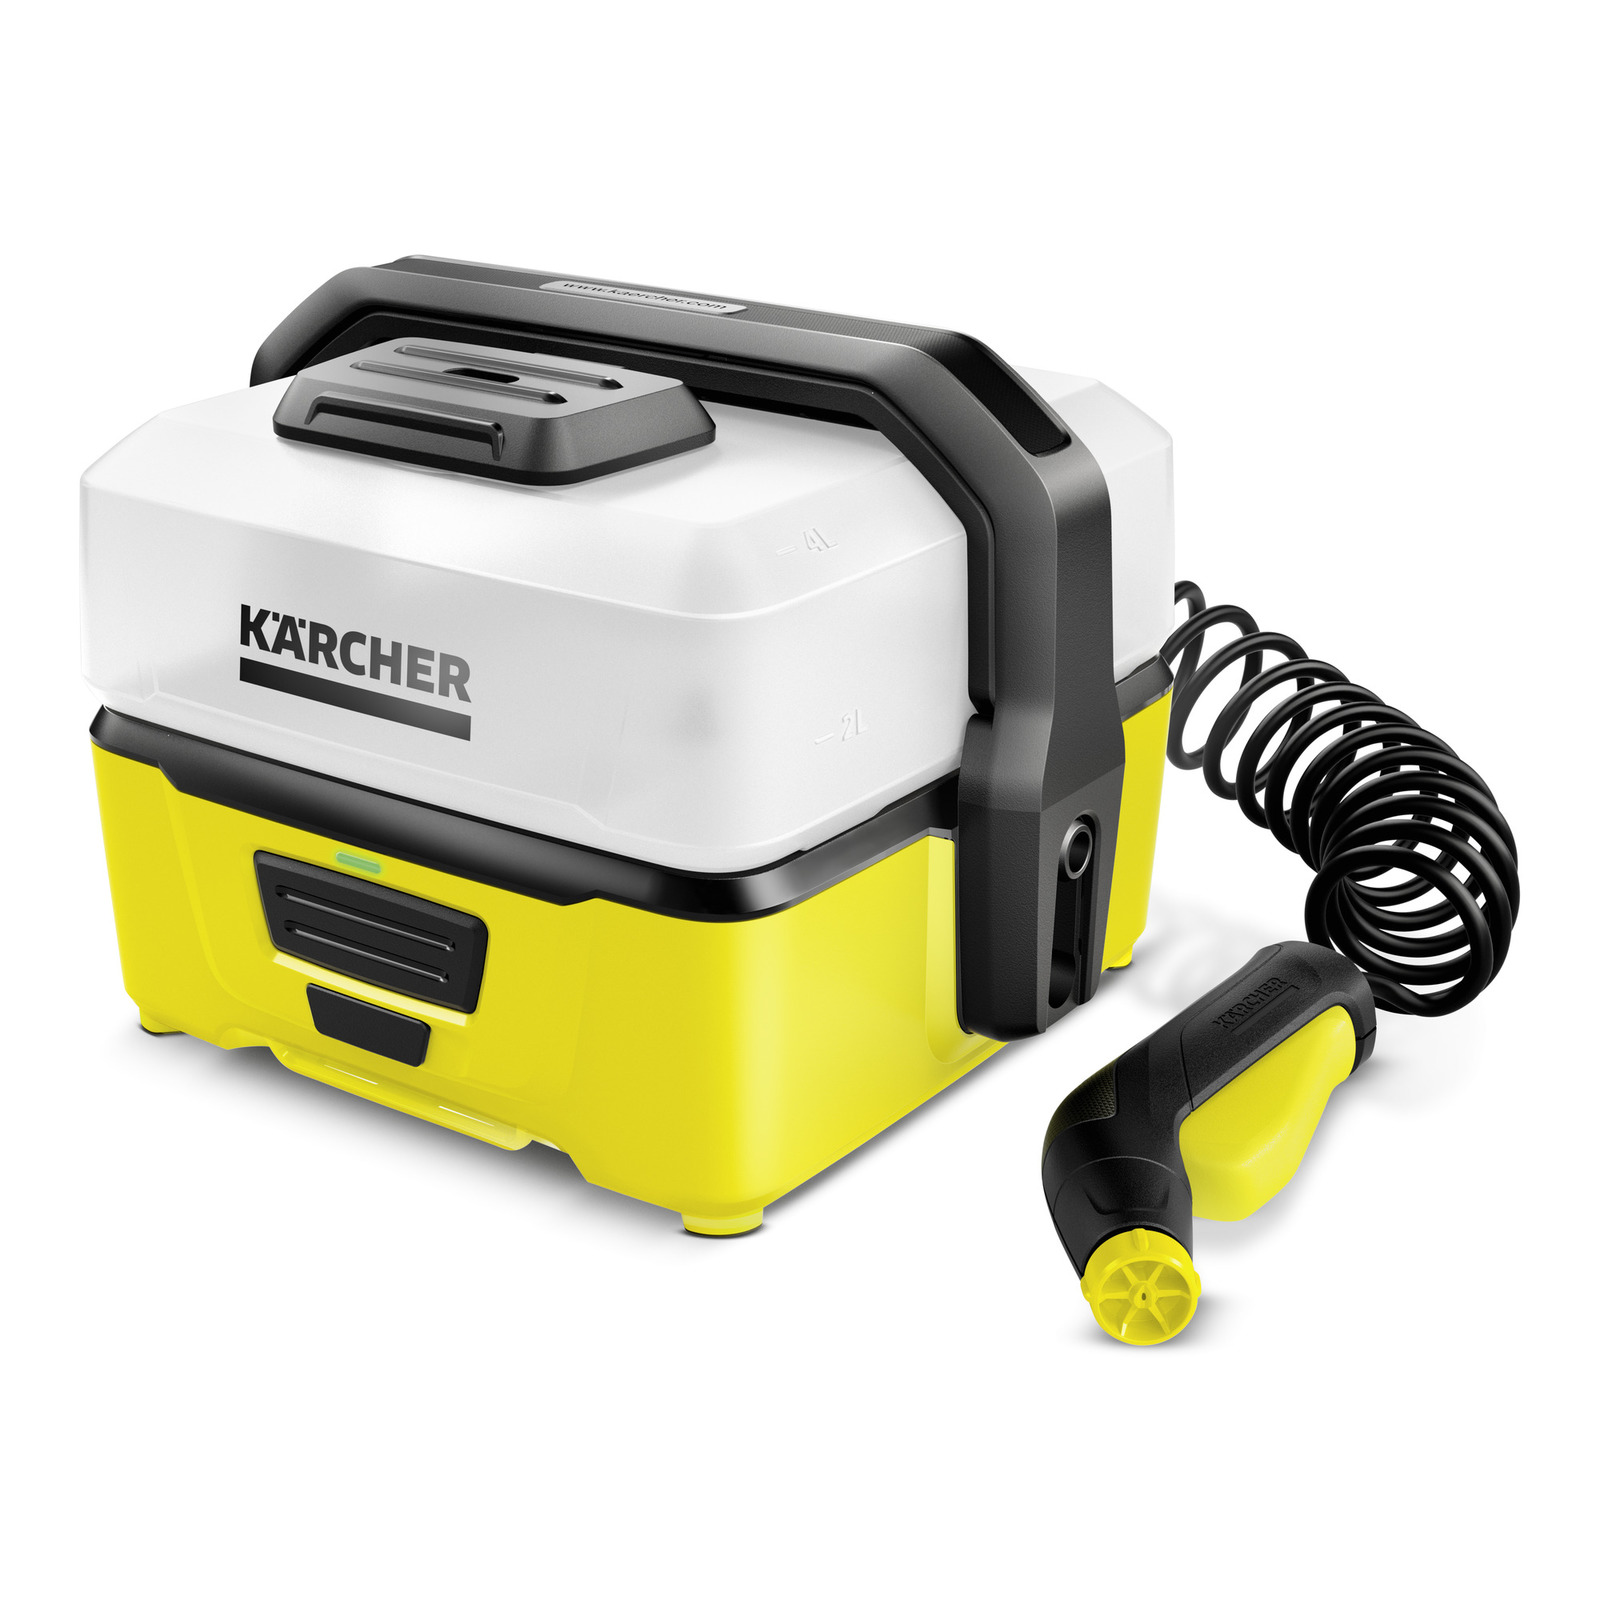 KARCHER MOBILE OUTDOOR CLEANER OC 3 (1.680-000.0)